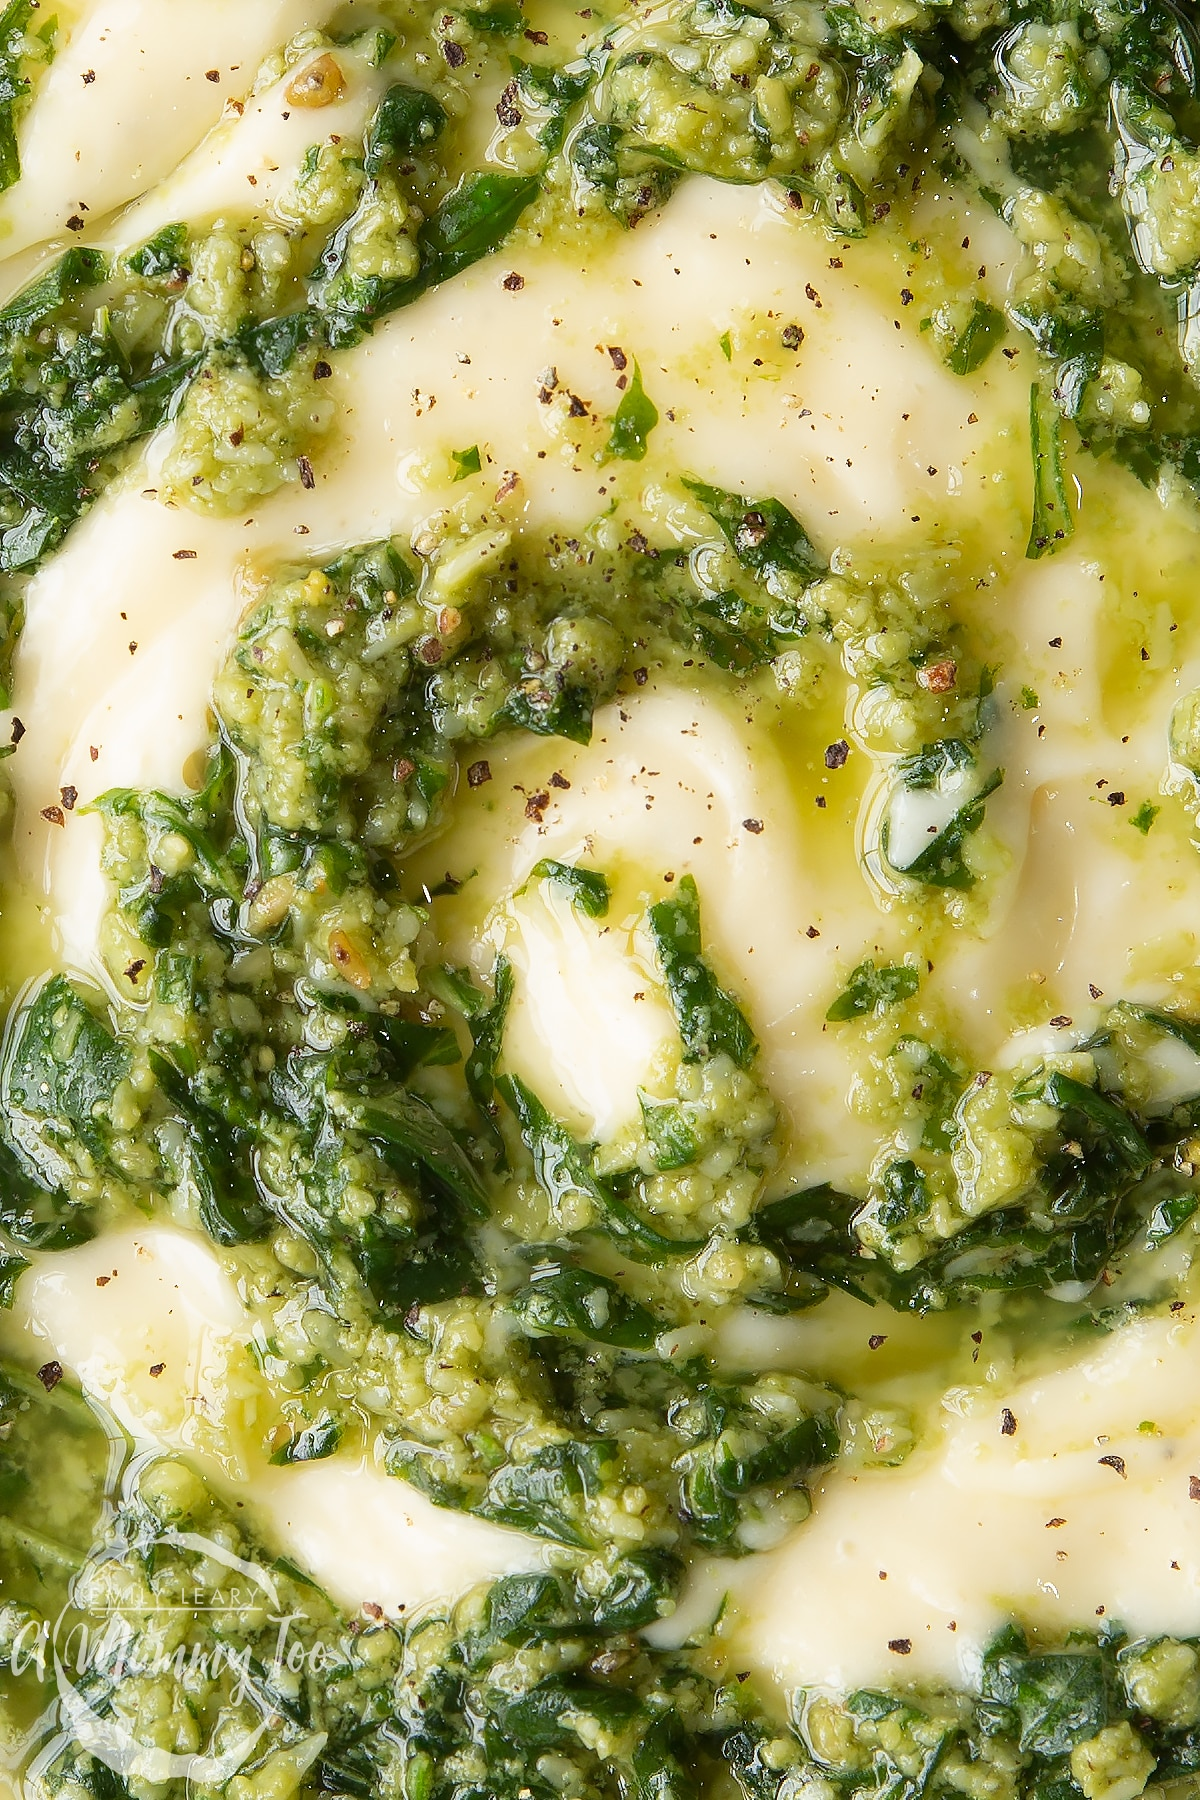 Close up of pesto mayo from above. The pesto and mayonnaise are swirled together.